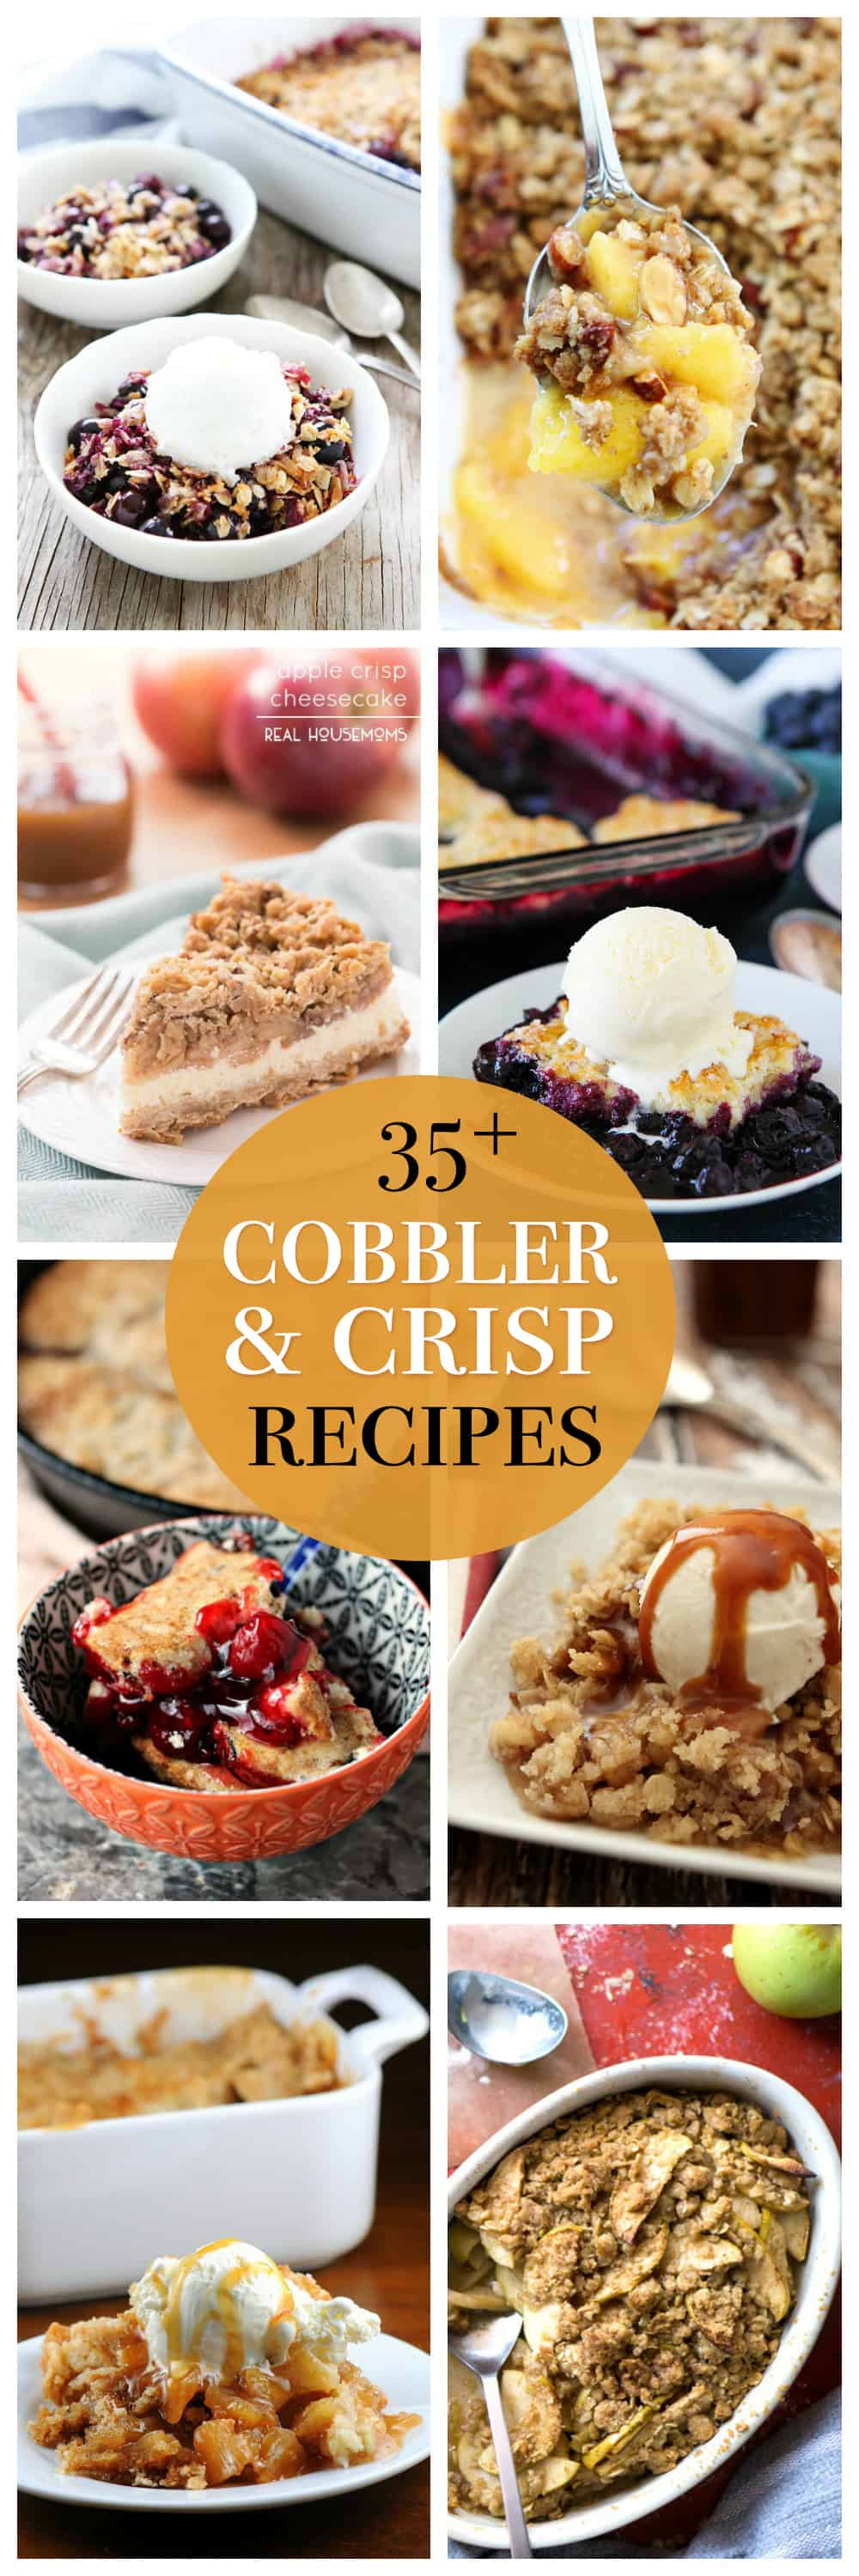 35 Delectable Crisp and Cobbler Recipes: Today we're bringing you a collection of everyone's favorite original One-Pan Desserts.